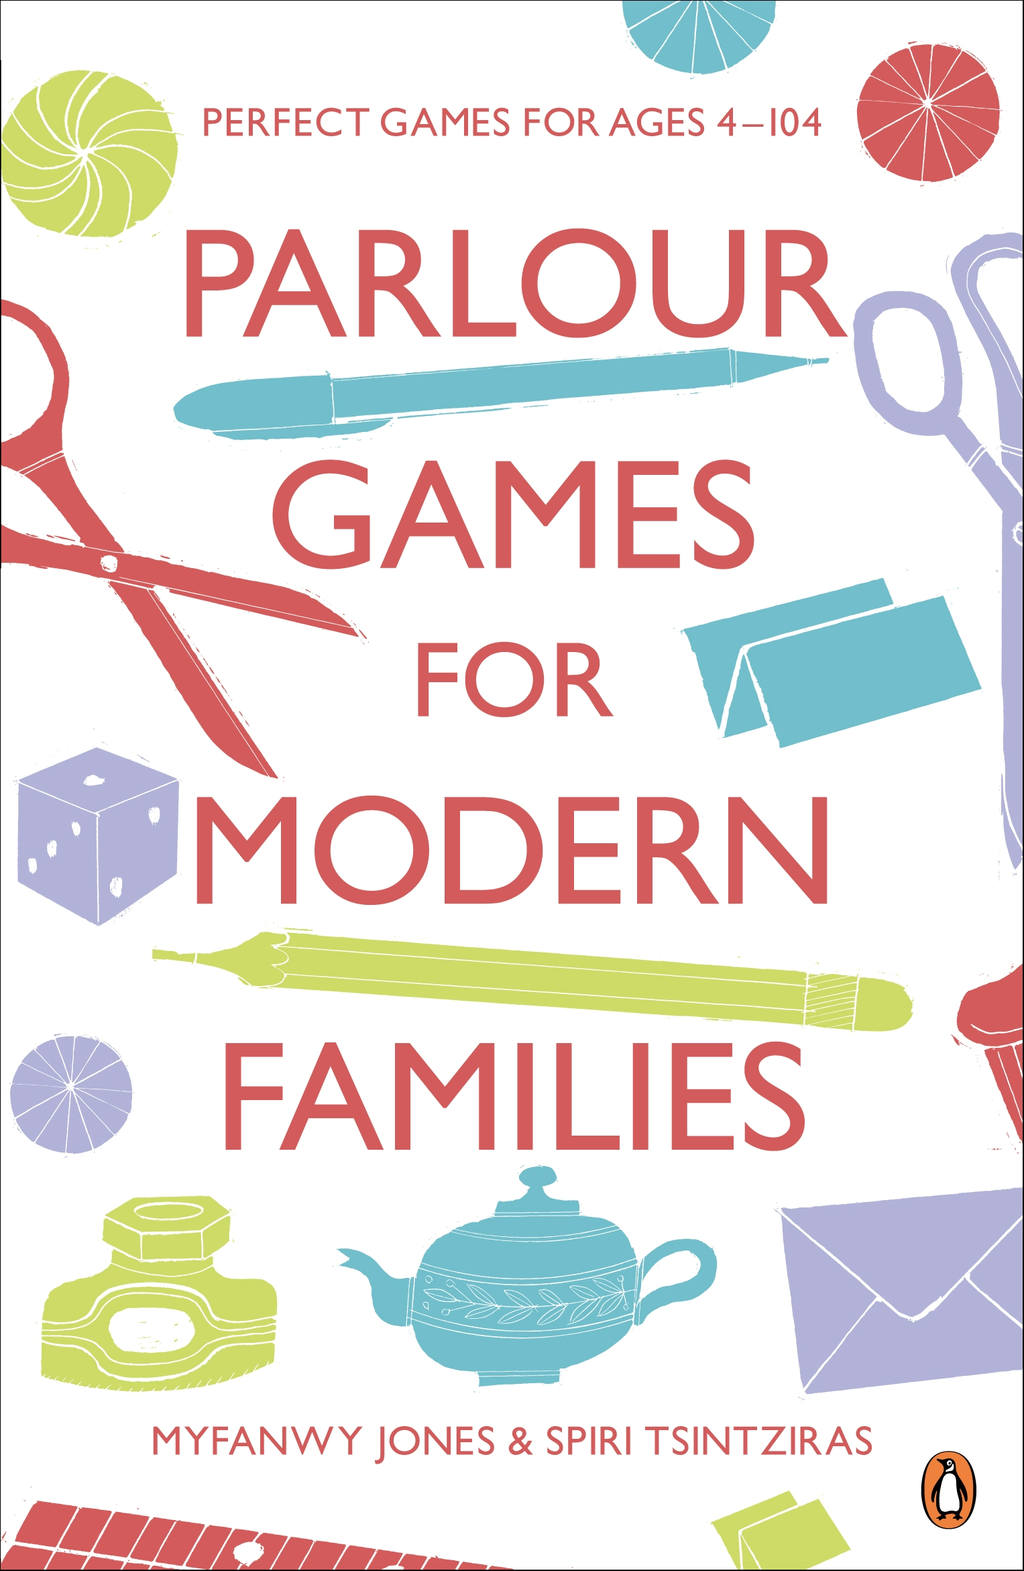 Parlour Games for Modern Families By: Myfanwy Jones